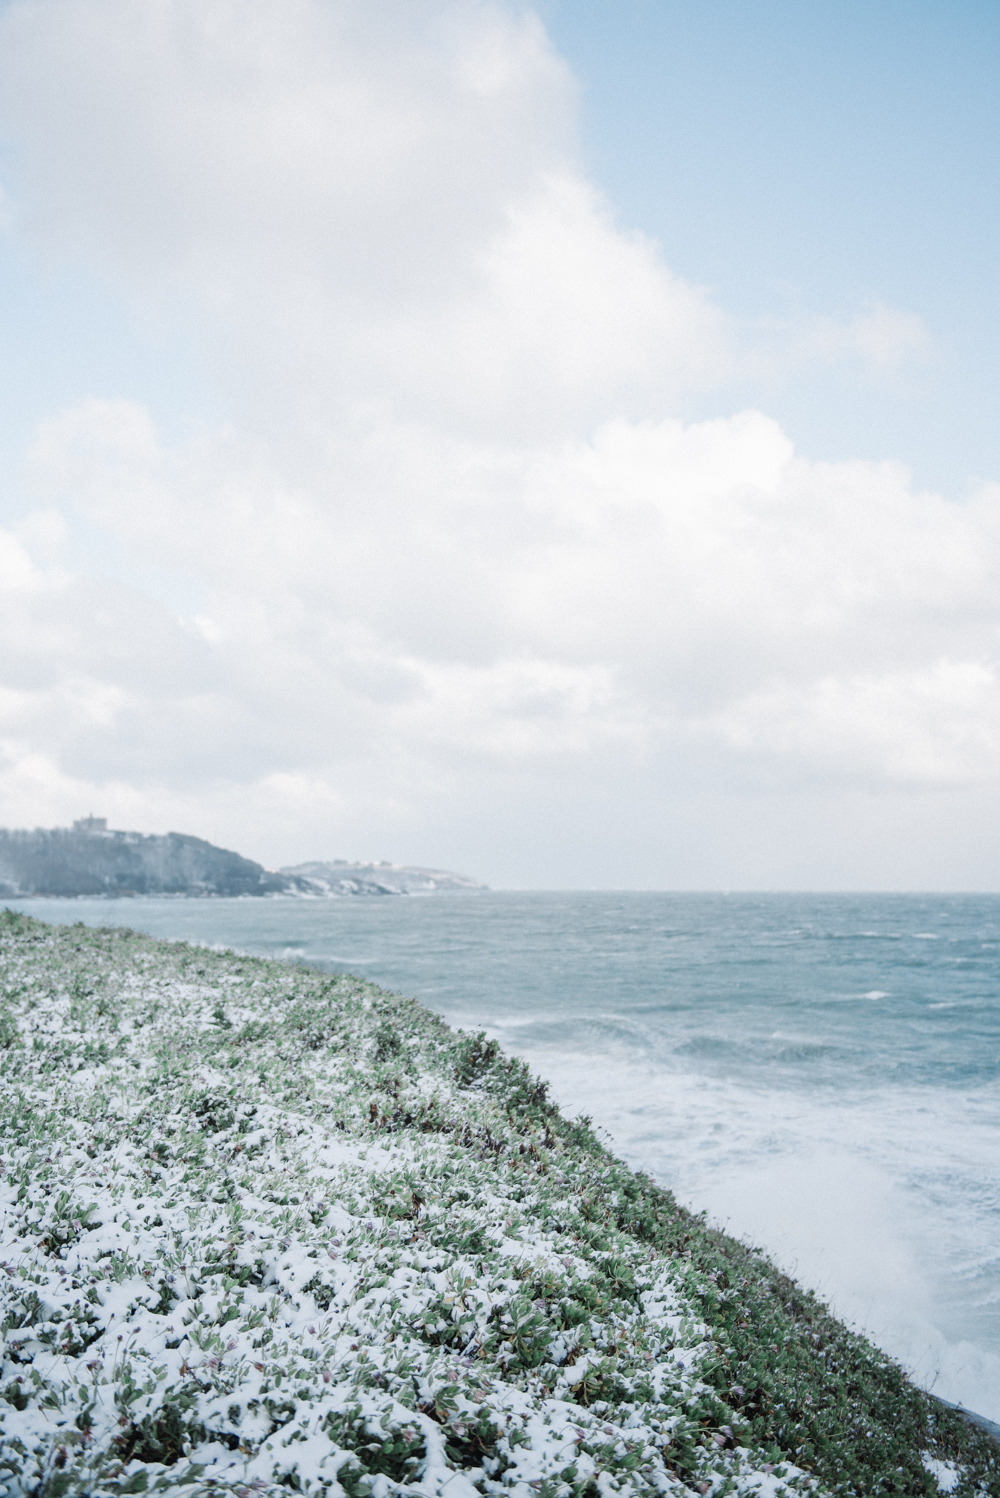 Cornwall In The Snow // www.oliviabossert.com // snow, cornwall, snow 2018, weather, photography of snow, lifestyle photography, landscape photography, united kingdom, falmouth, UK, england